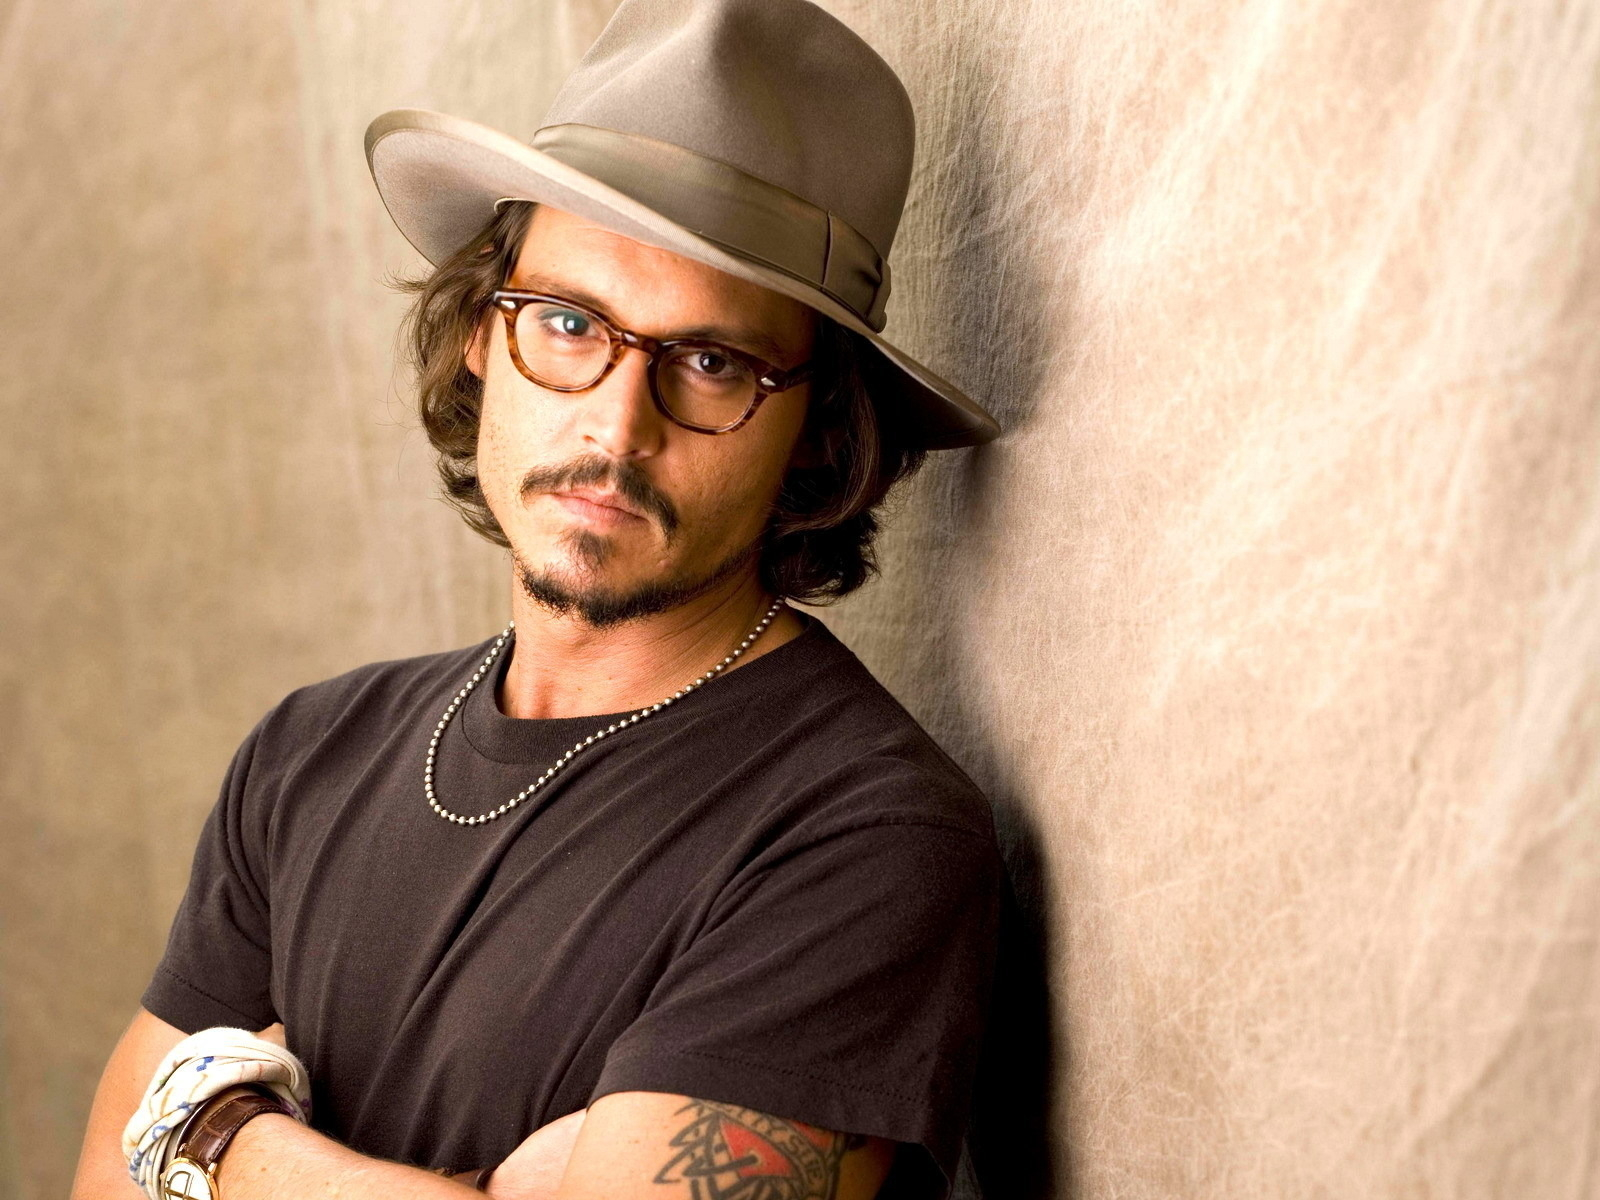 Men Male Celebrity Johnny Depp a hat 026588  Computer wallpaper of johnny depp